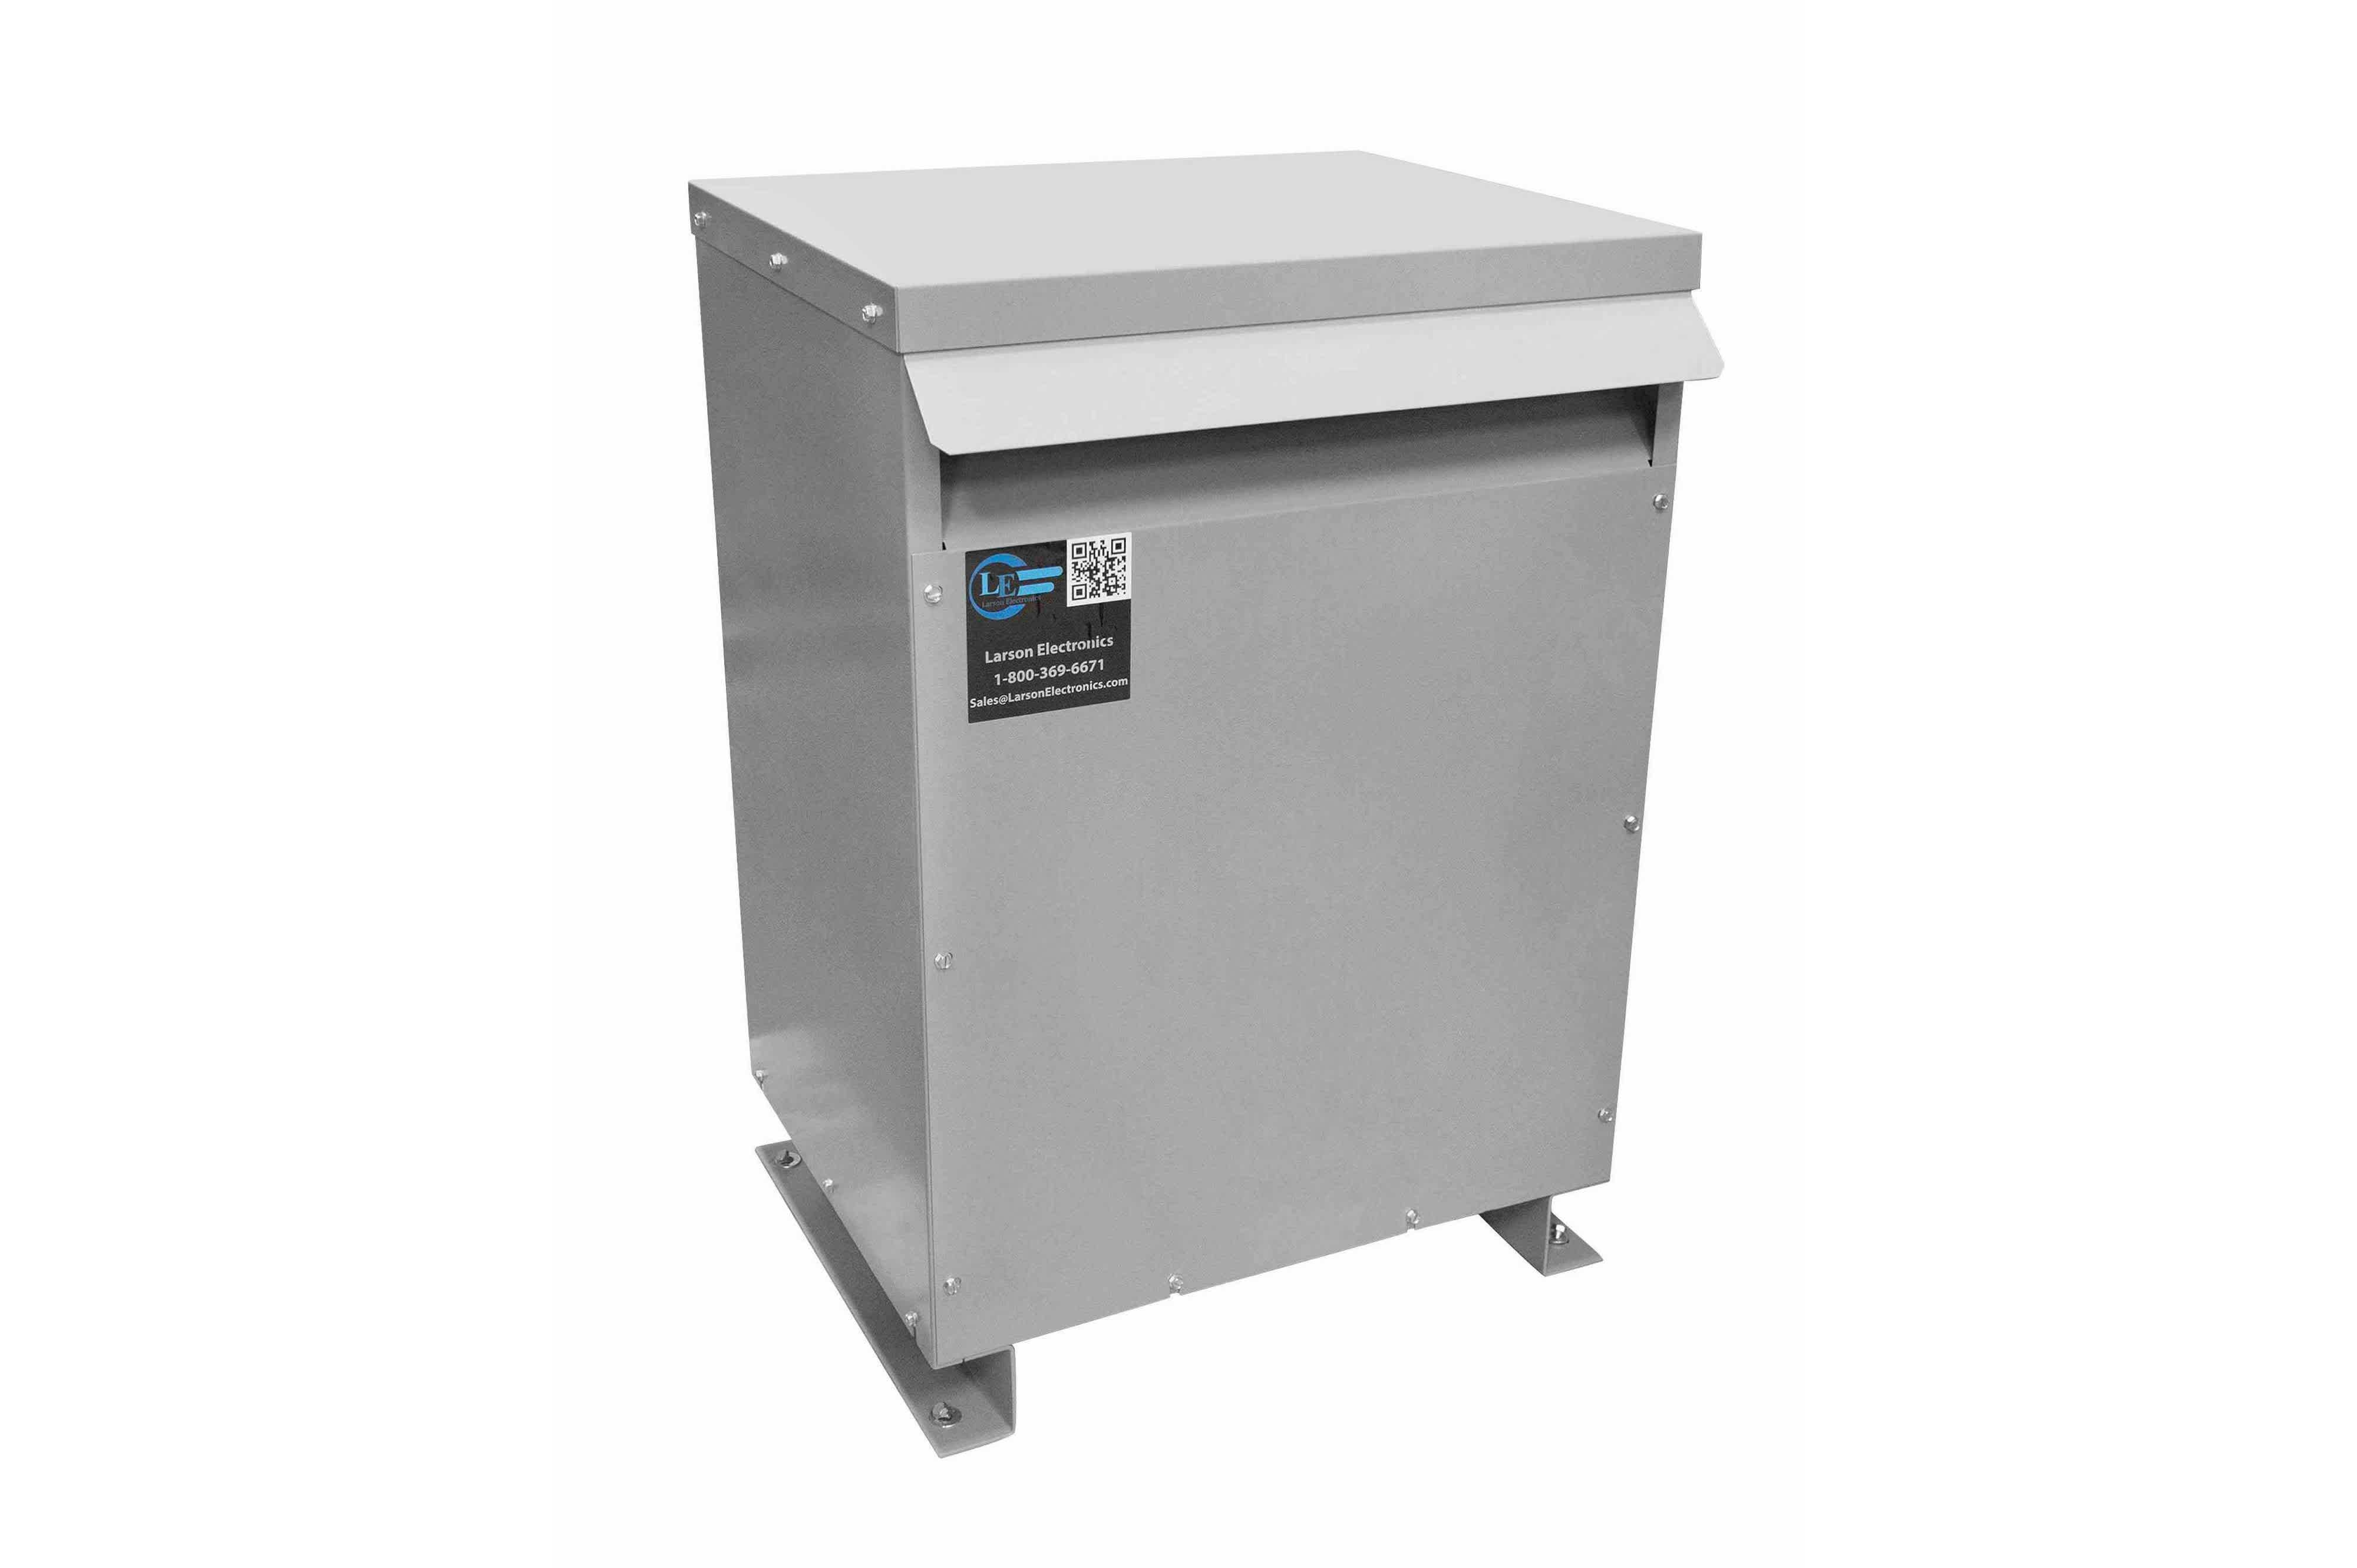 27 kVA 3PH Isolation Transformer, 380V Wye Primary, 480Y/277 Wye-N Secondary, N3R, Ventilated, 60 Hz